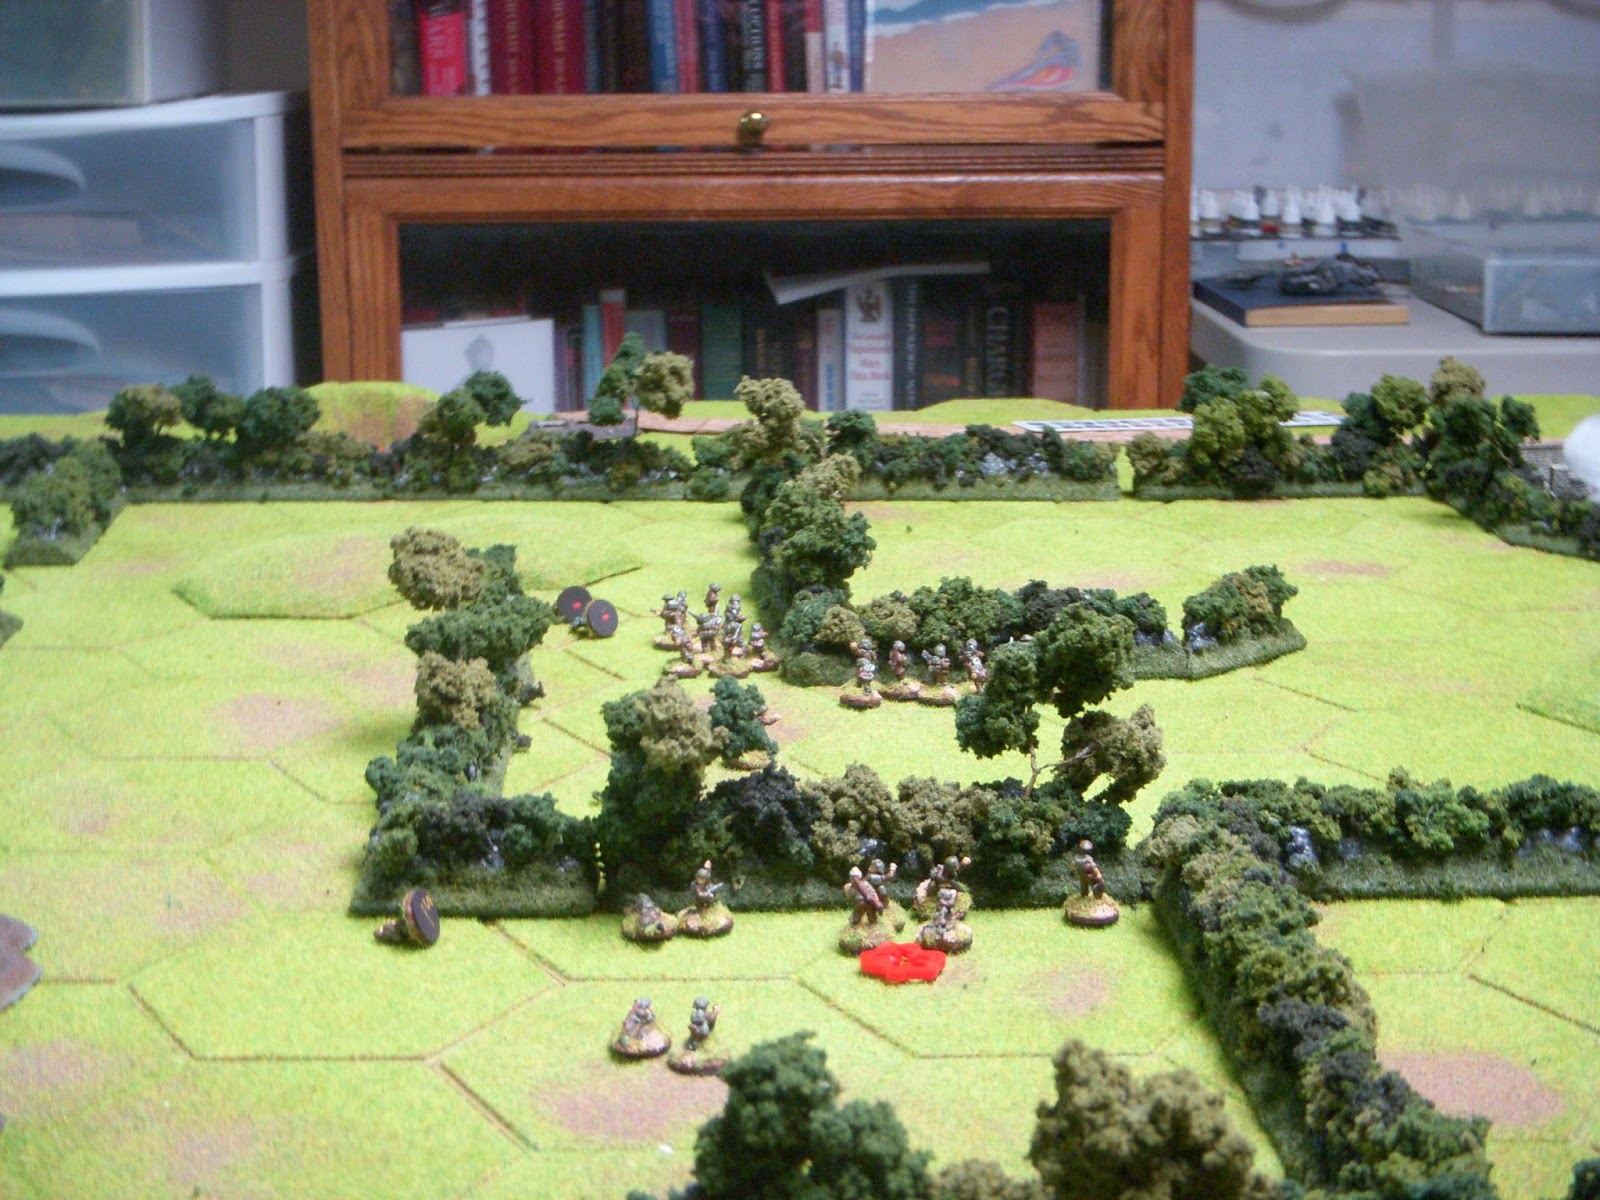 Bounding overwatch gains the British some ground in the centre once the MG-42 starts to get flanked